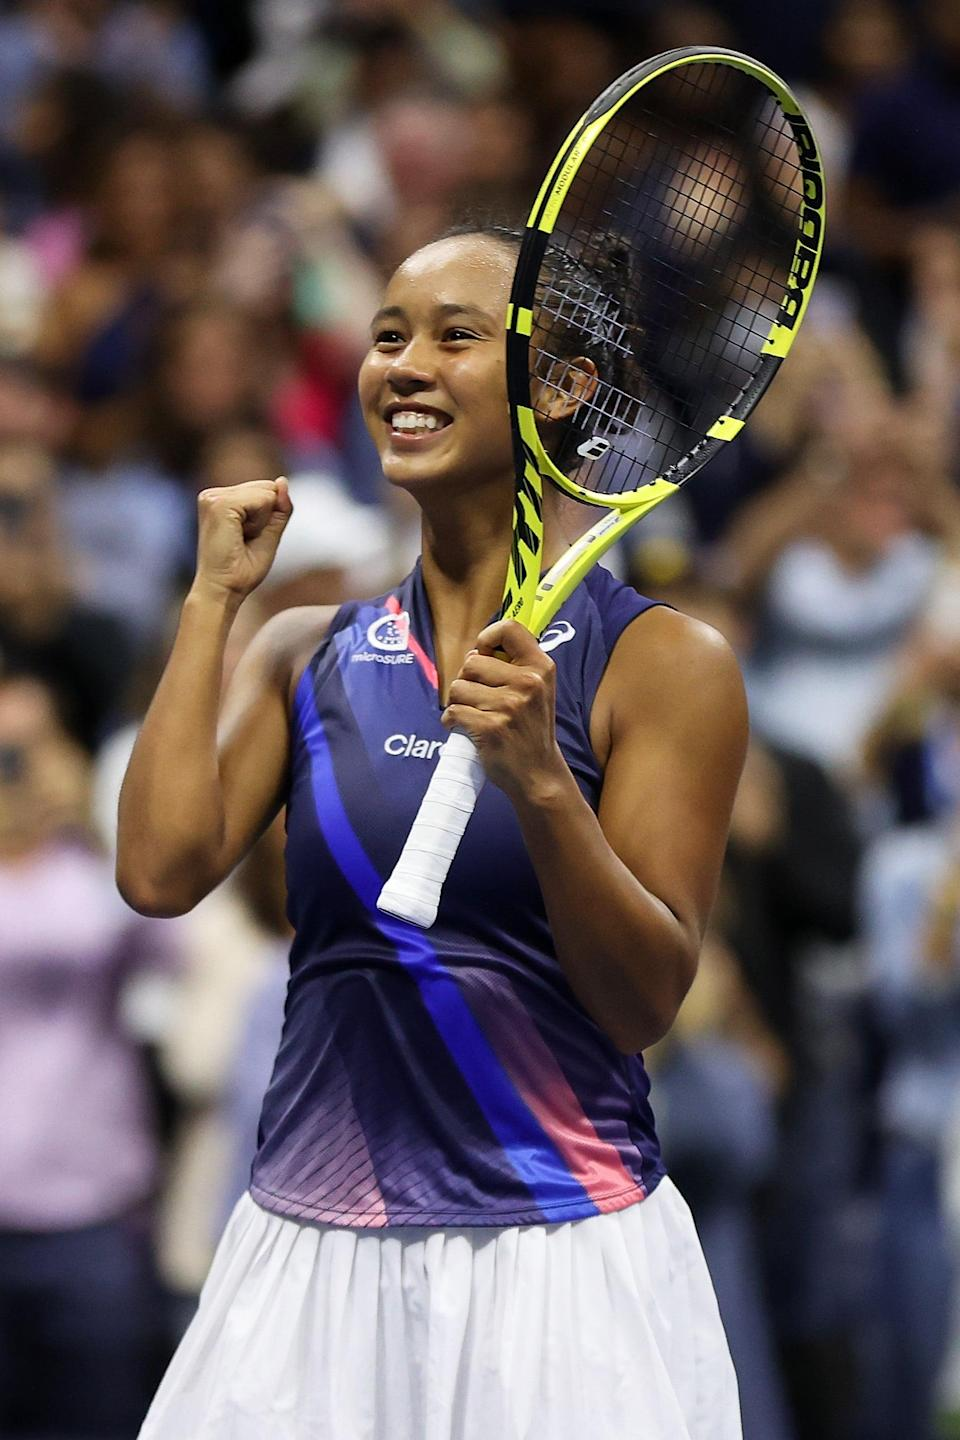 """<p>Born in Montreal, CA, Leylah Fernandez is coached by both <a href=""""http://gousfbulls.com/sports/mens-tennis/roster/romain-deridder/2778"""" class=""""link rapid-noclick-resp"""" rel=""""nofollow noopener"""" target=""""_blank"""" data-ylk=""""slk:Romain Deridder"""">Romain Deridder</a> and her father, Jorge Fernandez, in Boynton Beach, FL, where she lives with her parents and younger sister. According to <strong>ESPN</strong> analyst Rennae Stubbs (<a href=""""http://www.espn.com/tennis/story/_/id/32160952/us-open-2021-leylah-fernandez-not-surprised-memorable-run-quarterfinals"""" class=""""link rapid-noclick-resp"""" rel=""""nofollow noopener"""" target=""""_blank"""" data-ylk=""""slk:who has spoken to the Fernandez family"""">who has spoken to the Fernandez family</a>), Jorge's training style """"has sort of like a military training regimen,"""" which has helped Leylah build confidence in her competitive athletic skills over the years.</p>"""